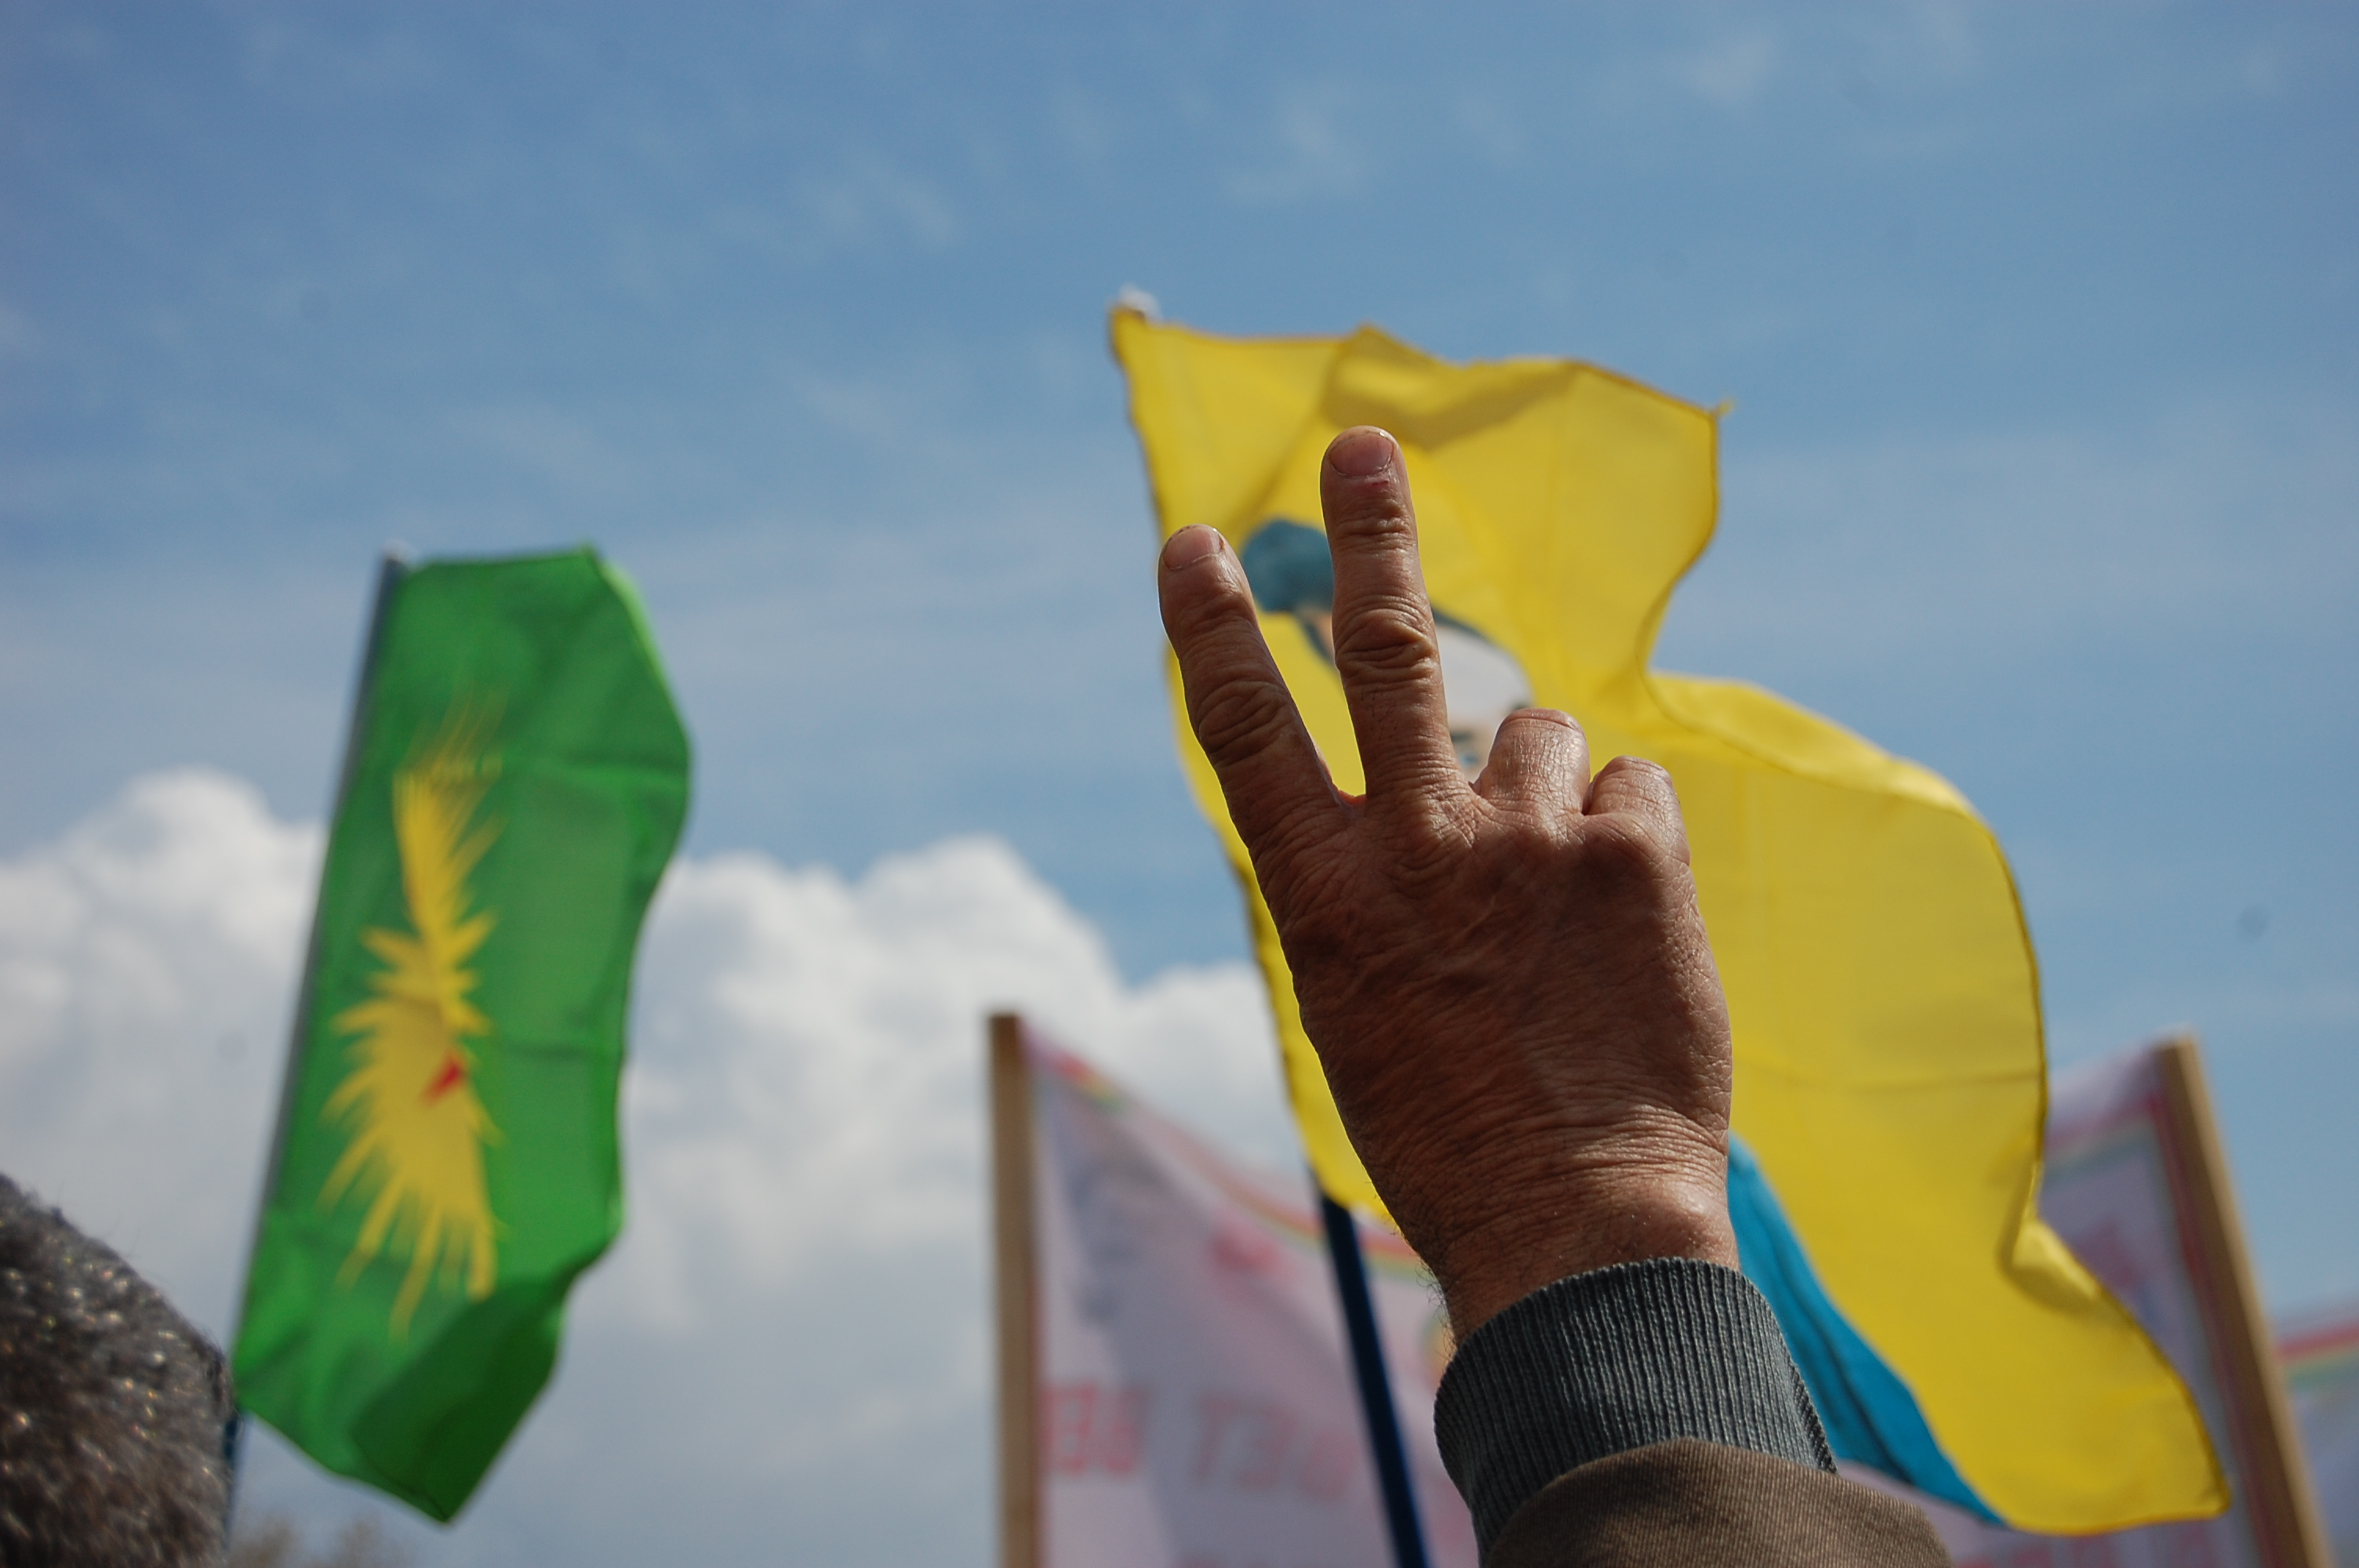 Kurdistan, democratic confederalism, Kurds, Ocalan, Turkey, Bakur, peace